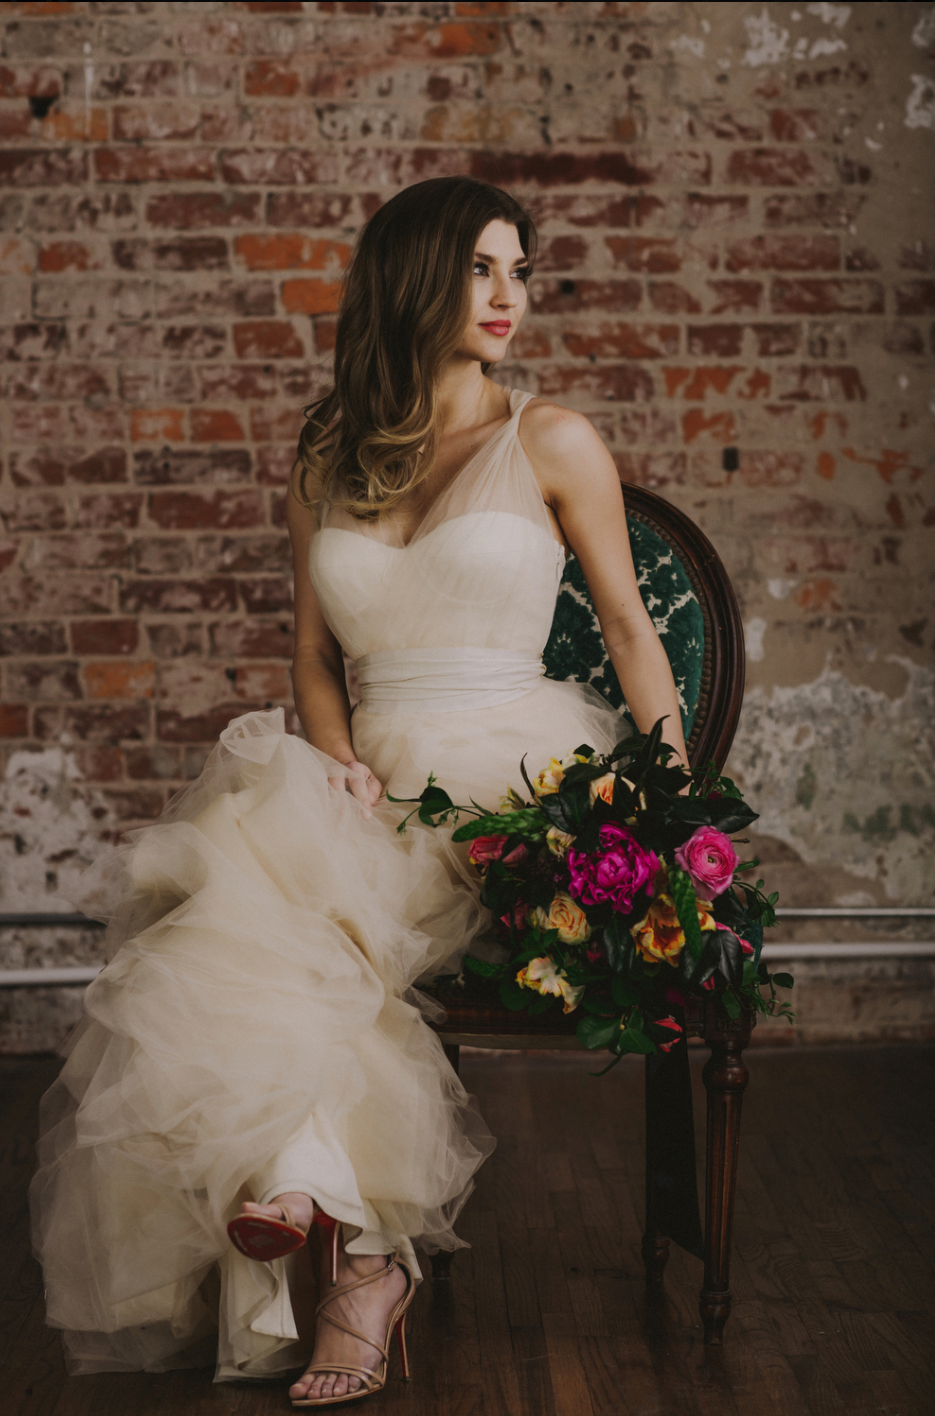 Ashlee Frazier in a stunning wedding gown during an engagement styled shoot. Houston, TX.